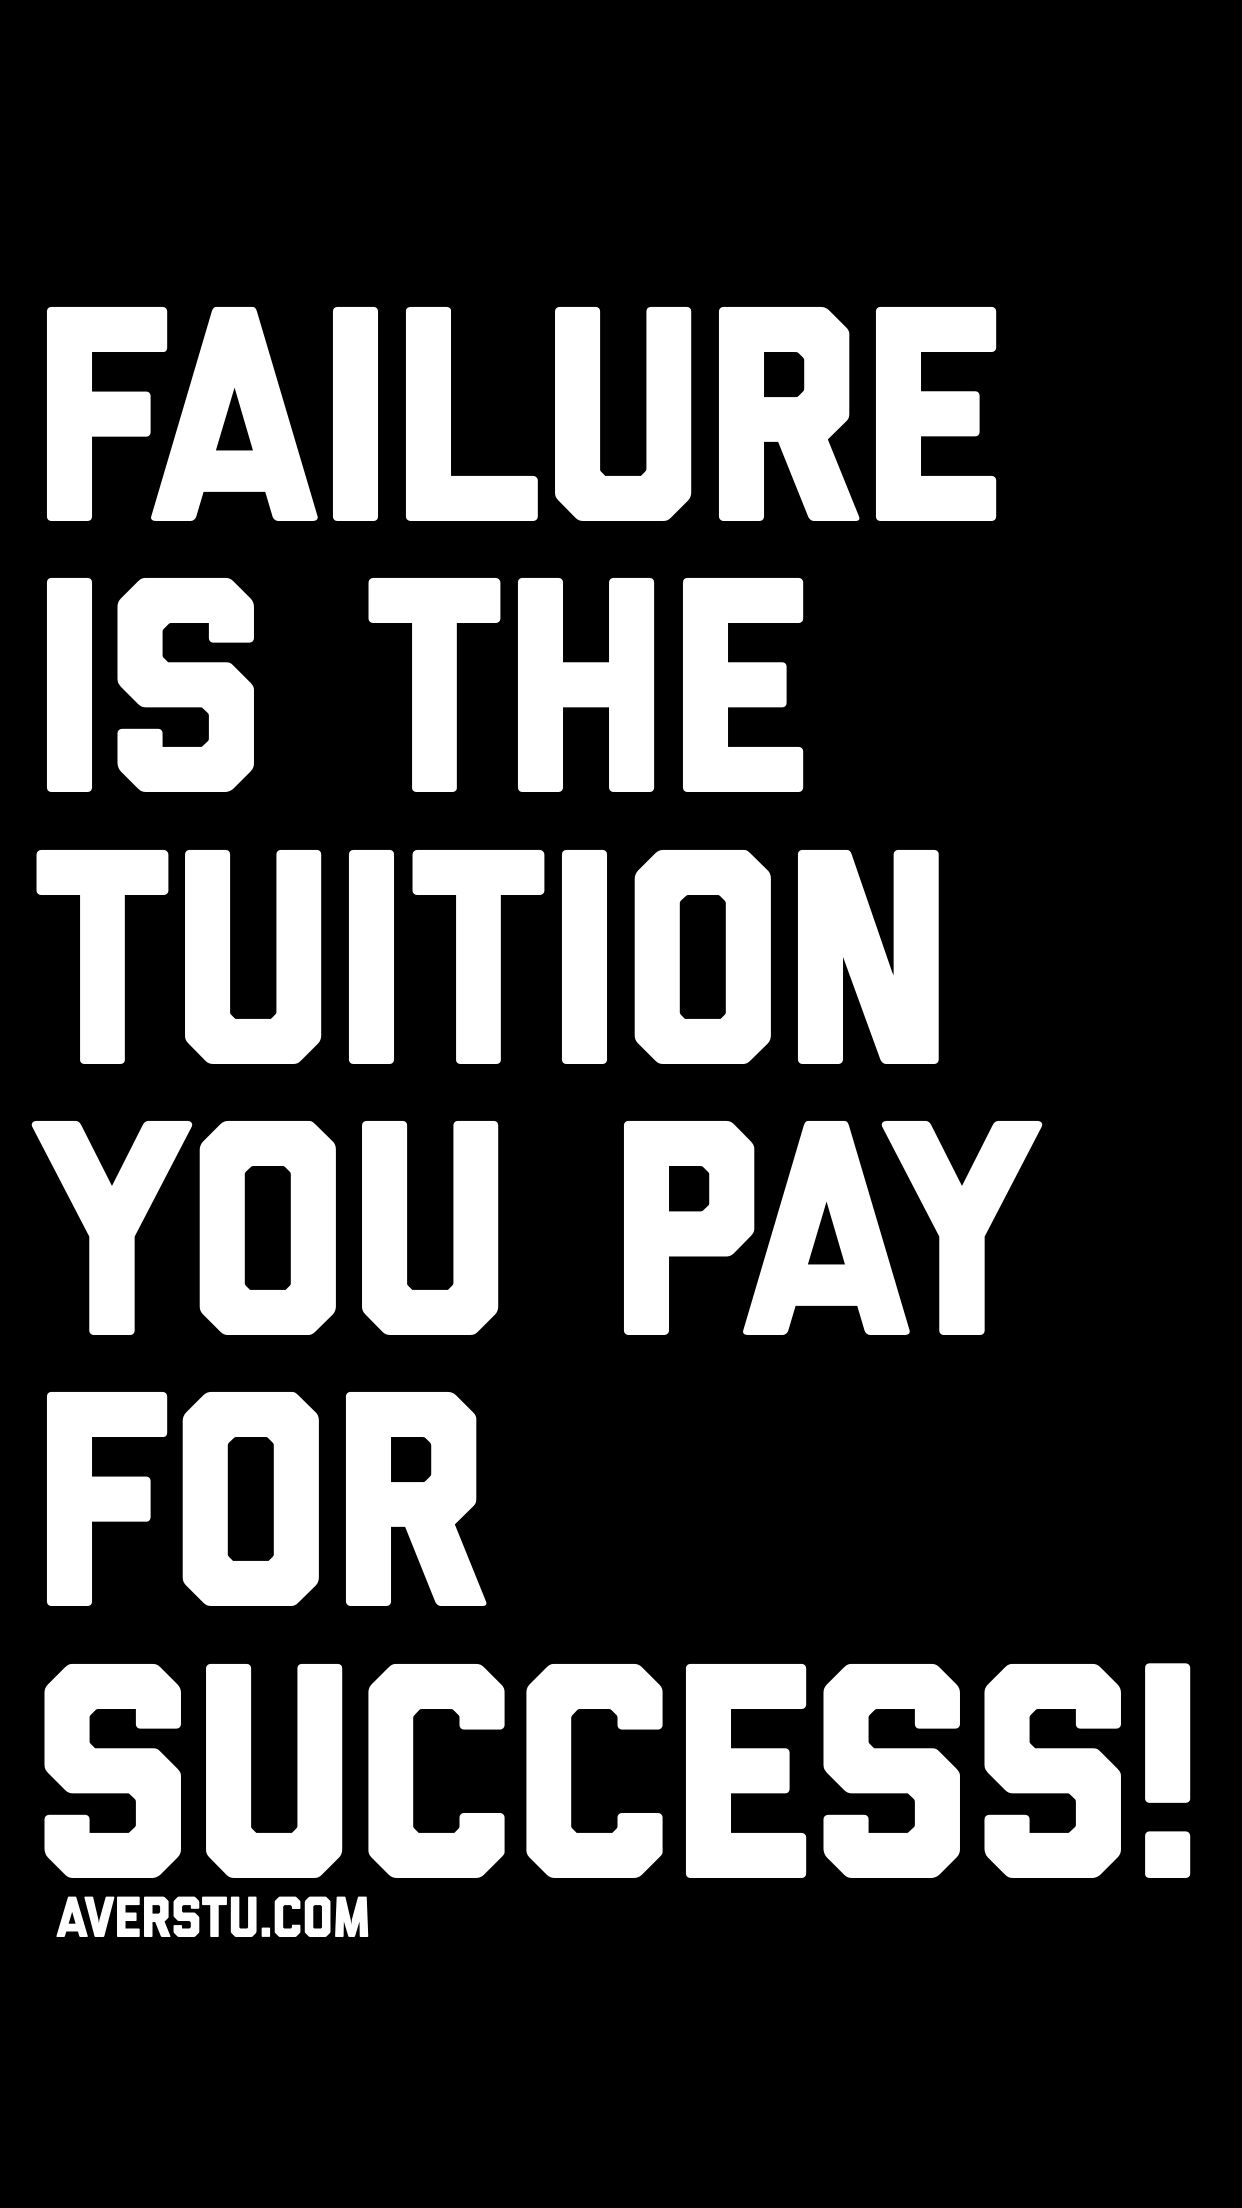 Failure is the tuition you pay for success